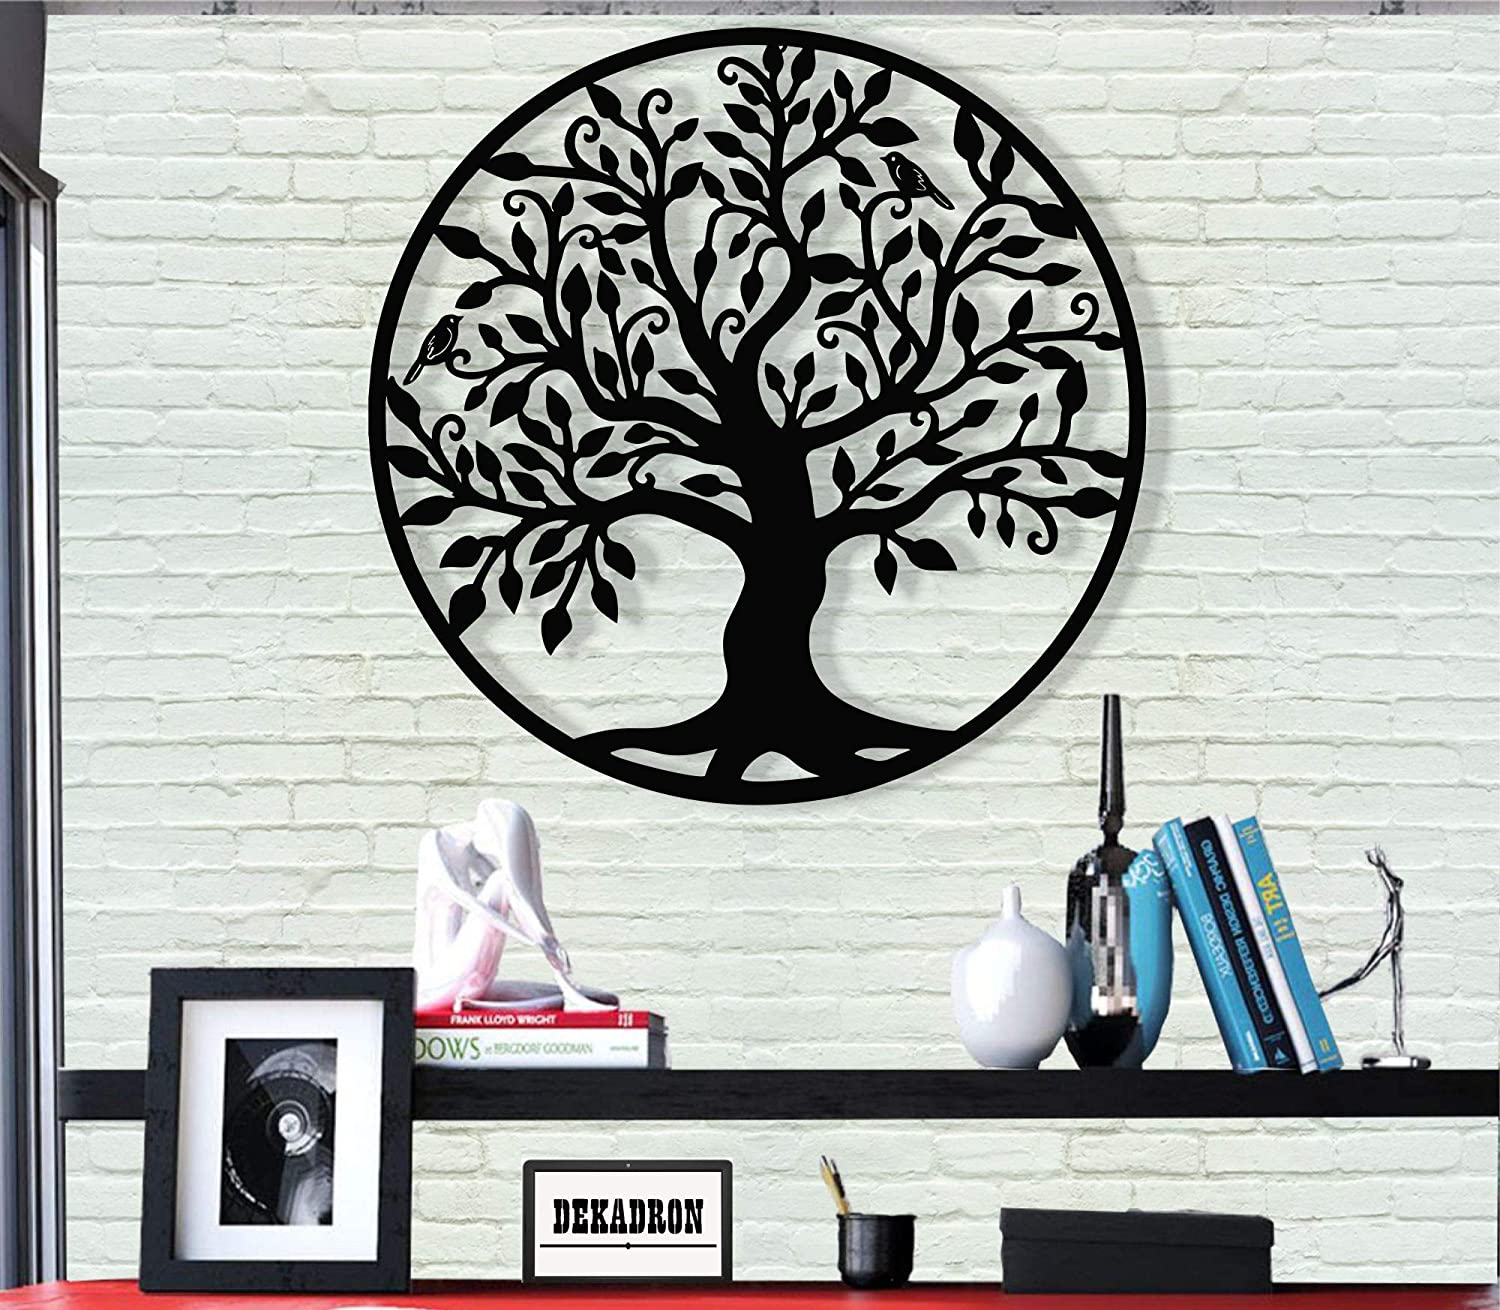 "DEKADRON Metal Wall Art - Tree of Life - Family Tree - 3D Wall Silhouette Metal Wall Decor Home Office Decoration Bedroom Living Room Decor Sculpture (17"" W x 18"" H/44x46cm)"